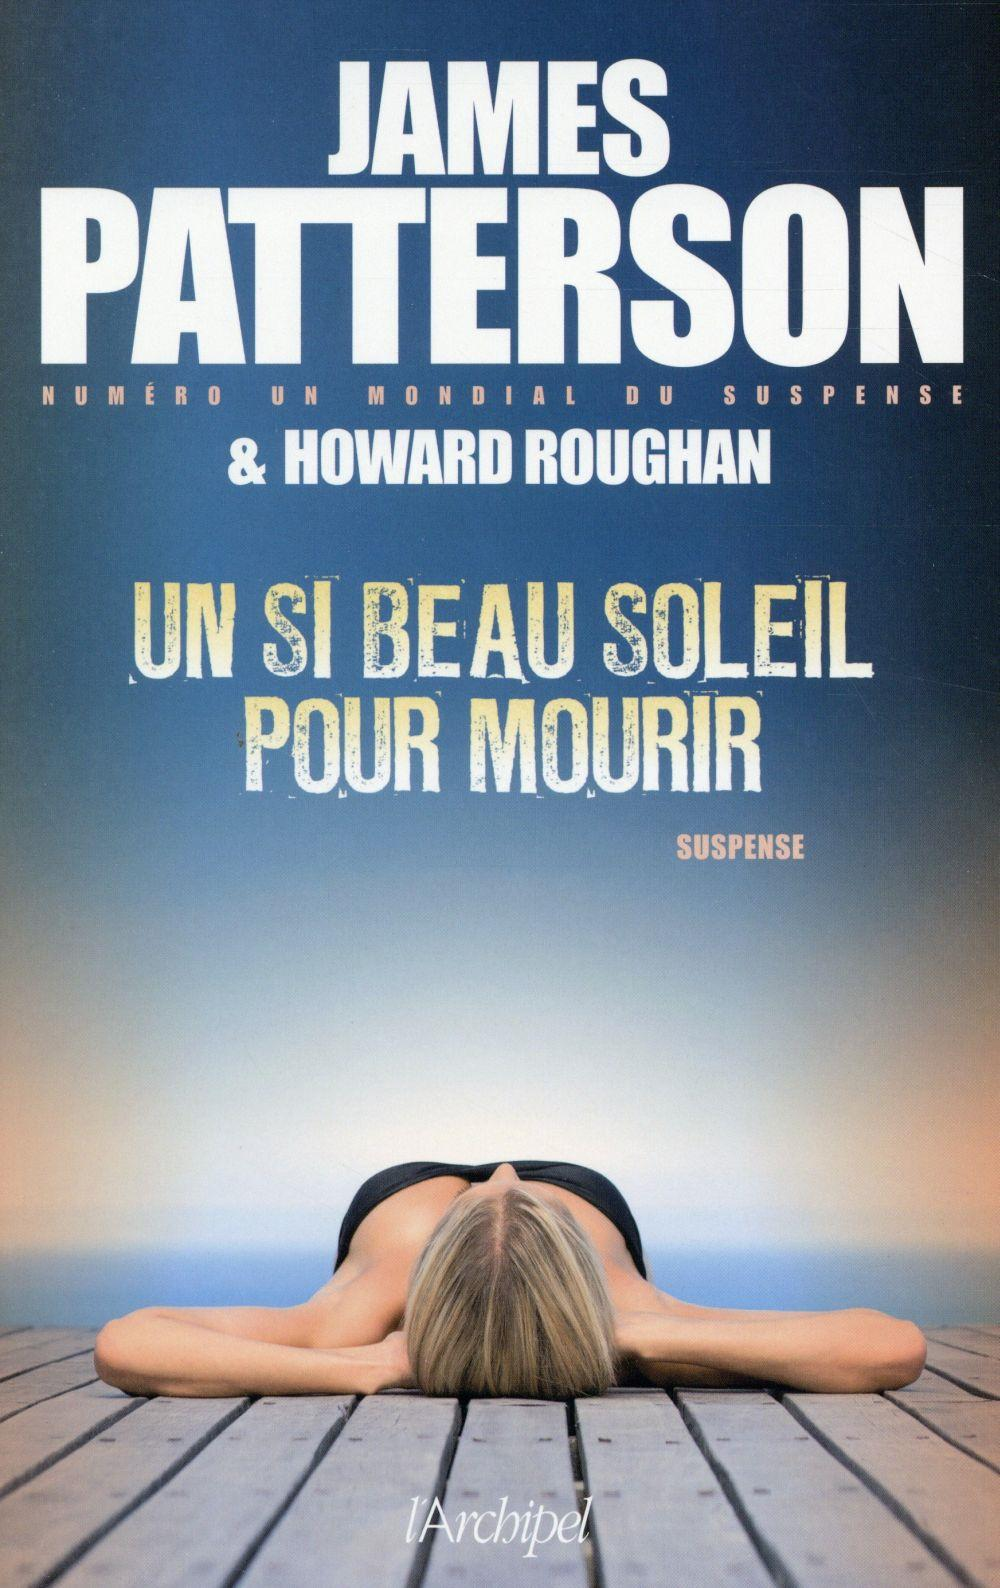 Un si beau soleil pour mourir  - James Patterson  - Howard Roughan